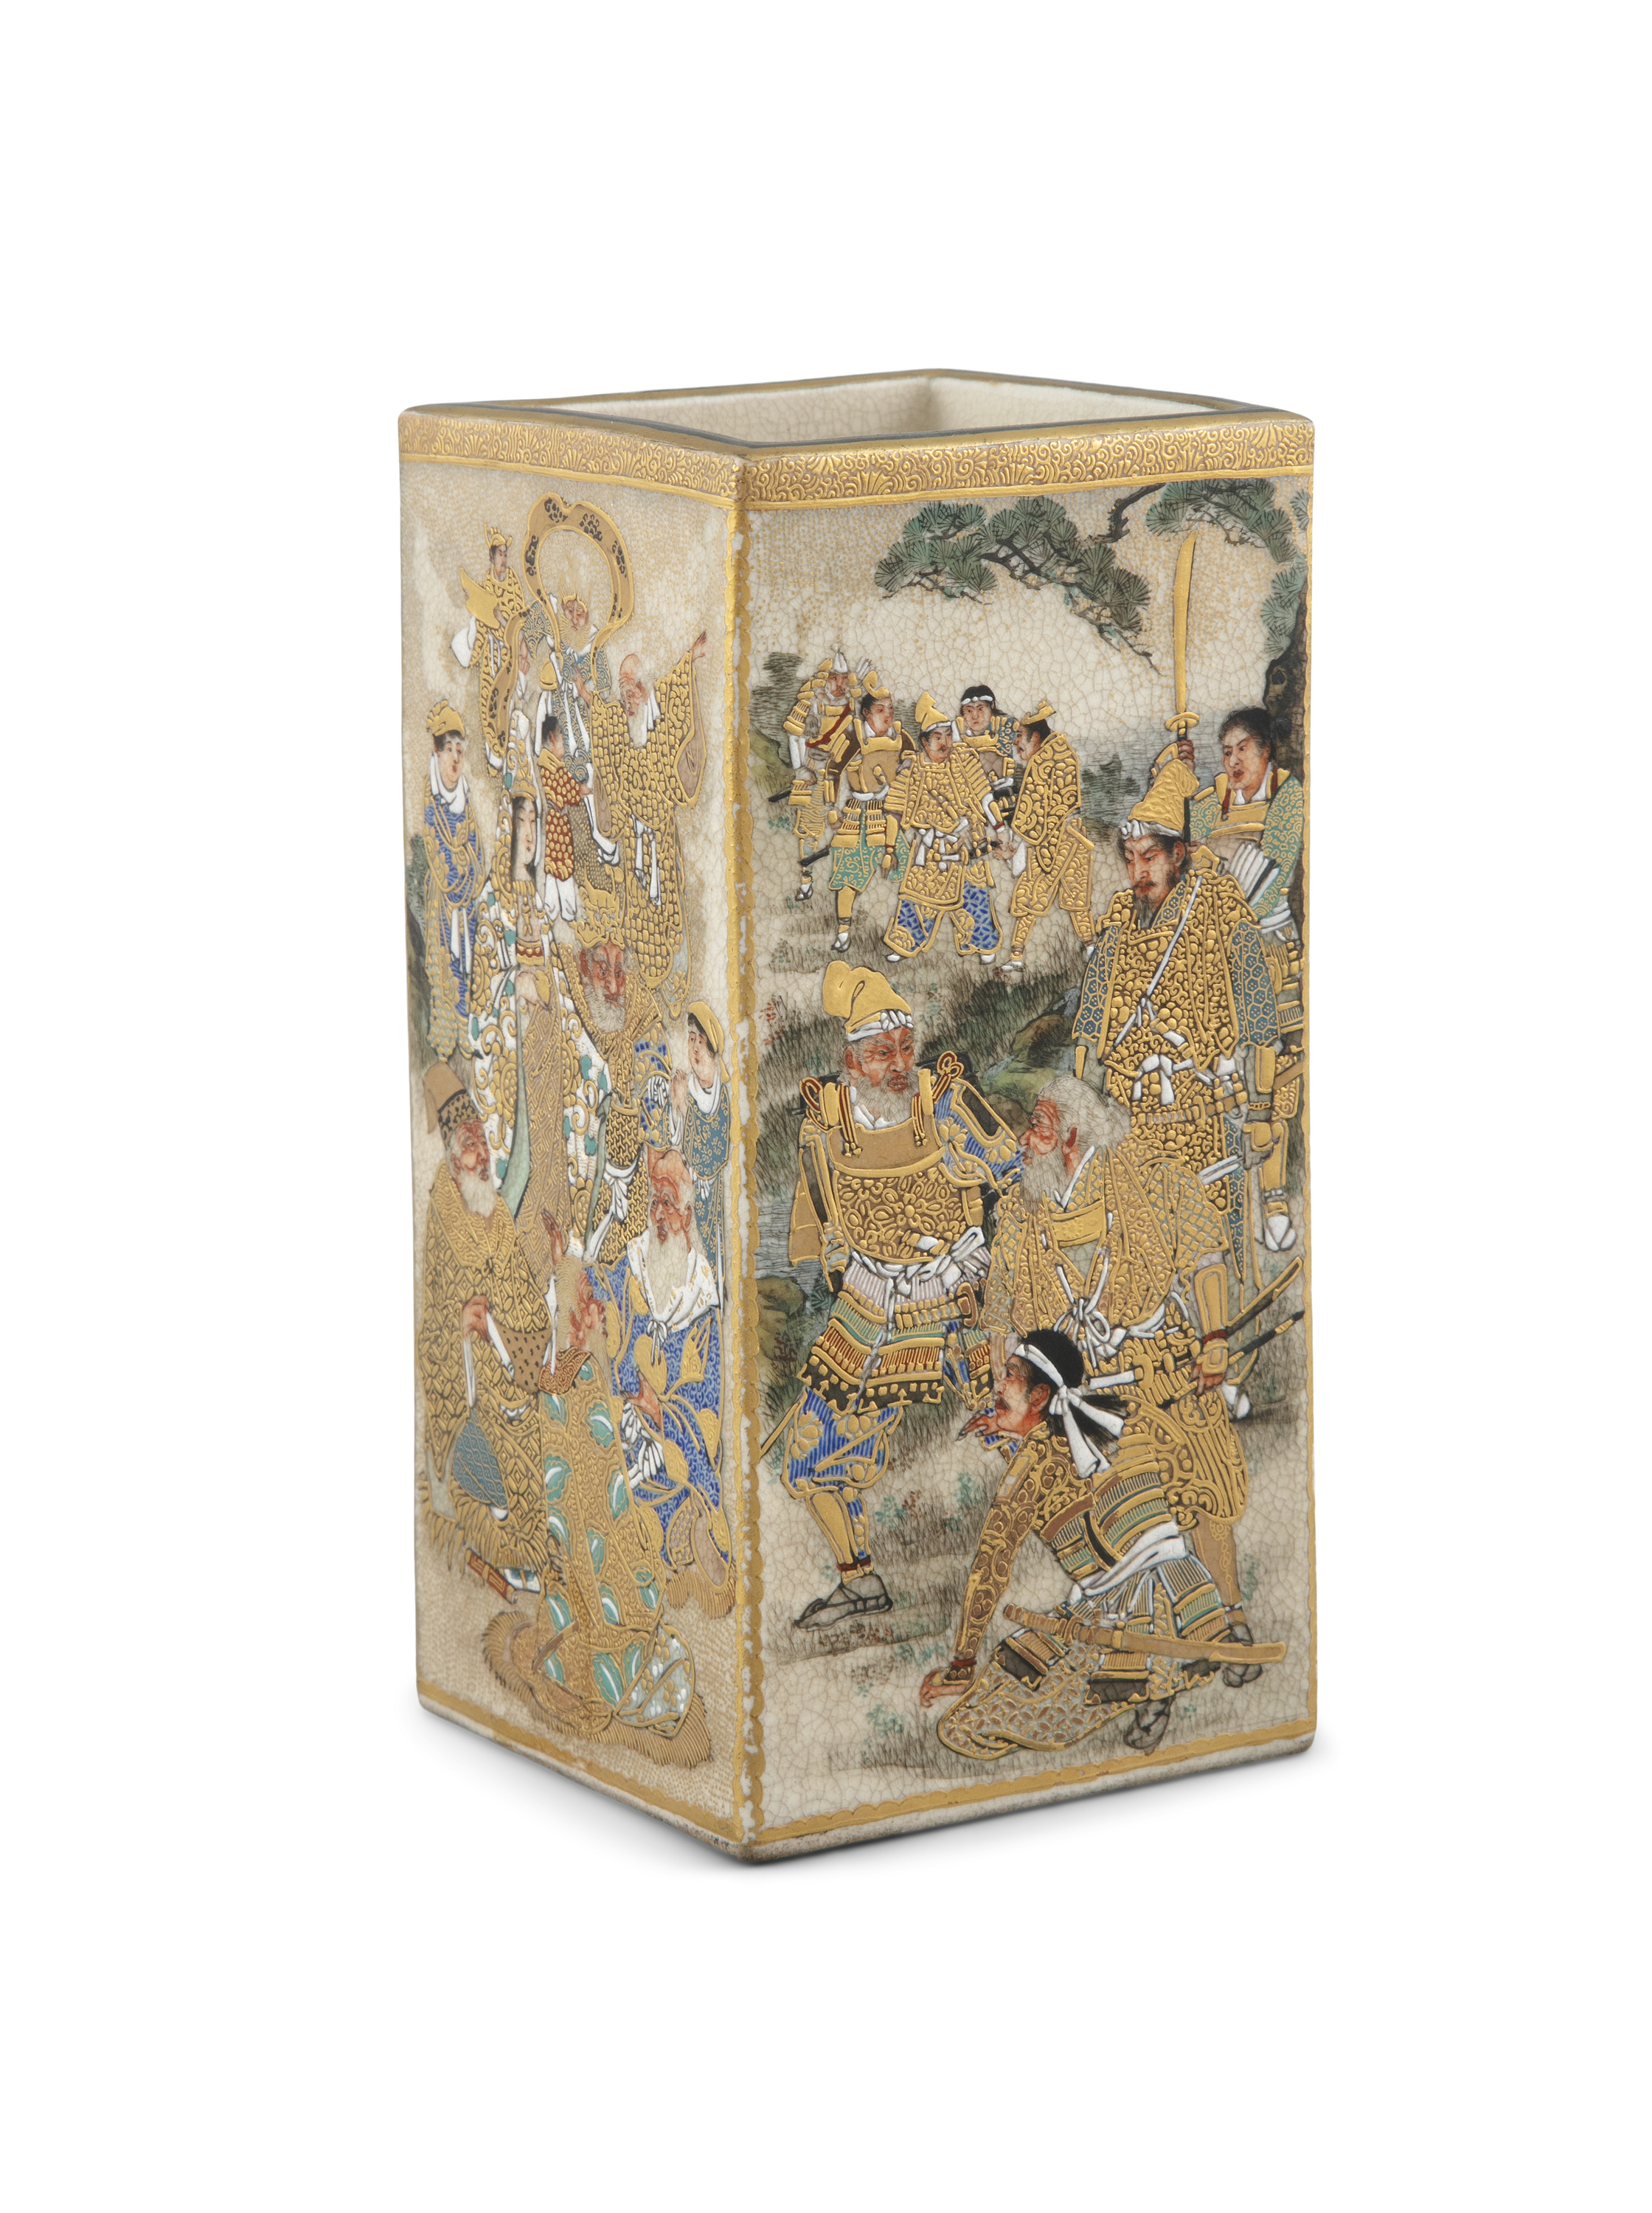 A SATSUMA 'WARRIORS' SQUARE POT POSSIBLY BY RYUZAN 龍山 Japan, Meiji period Richly adorned in gilt and